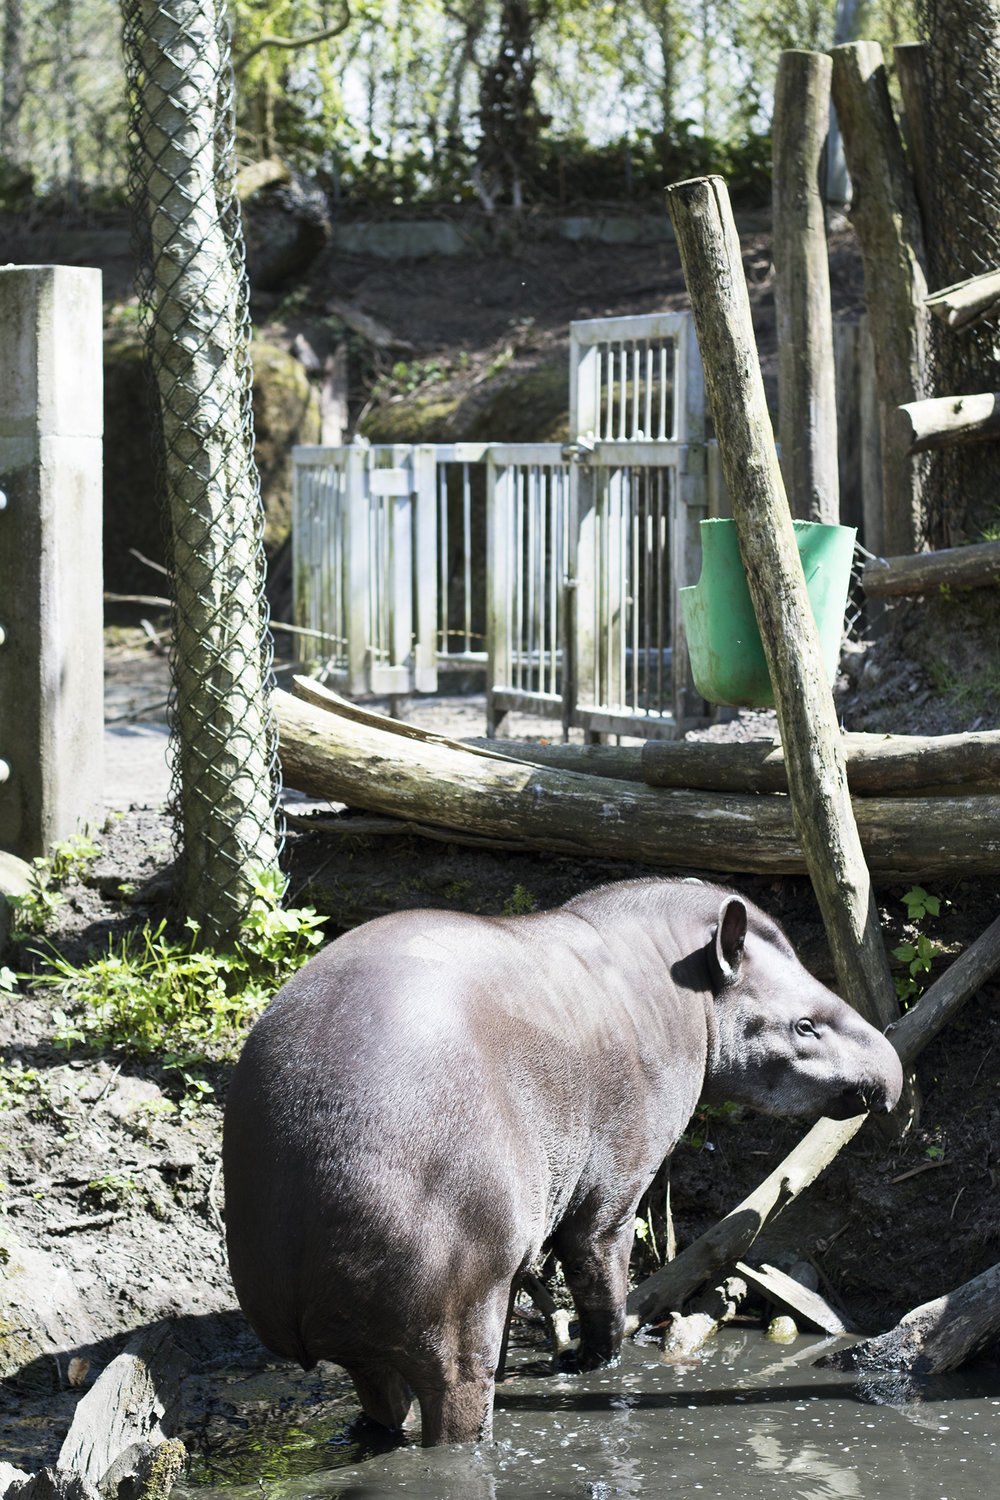 Tapir | Foto: I DO ART Agency.